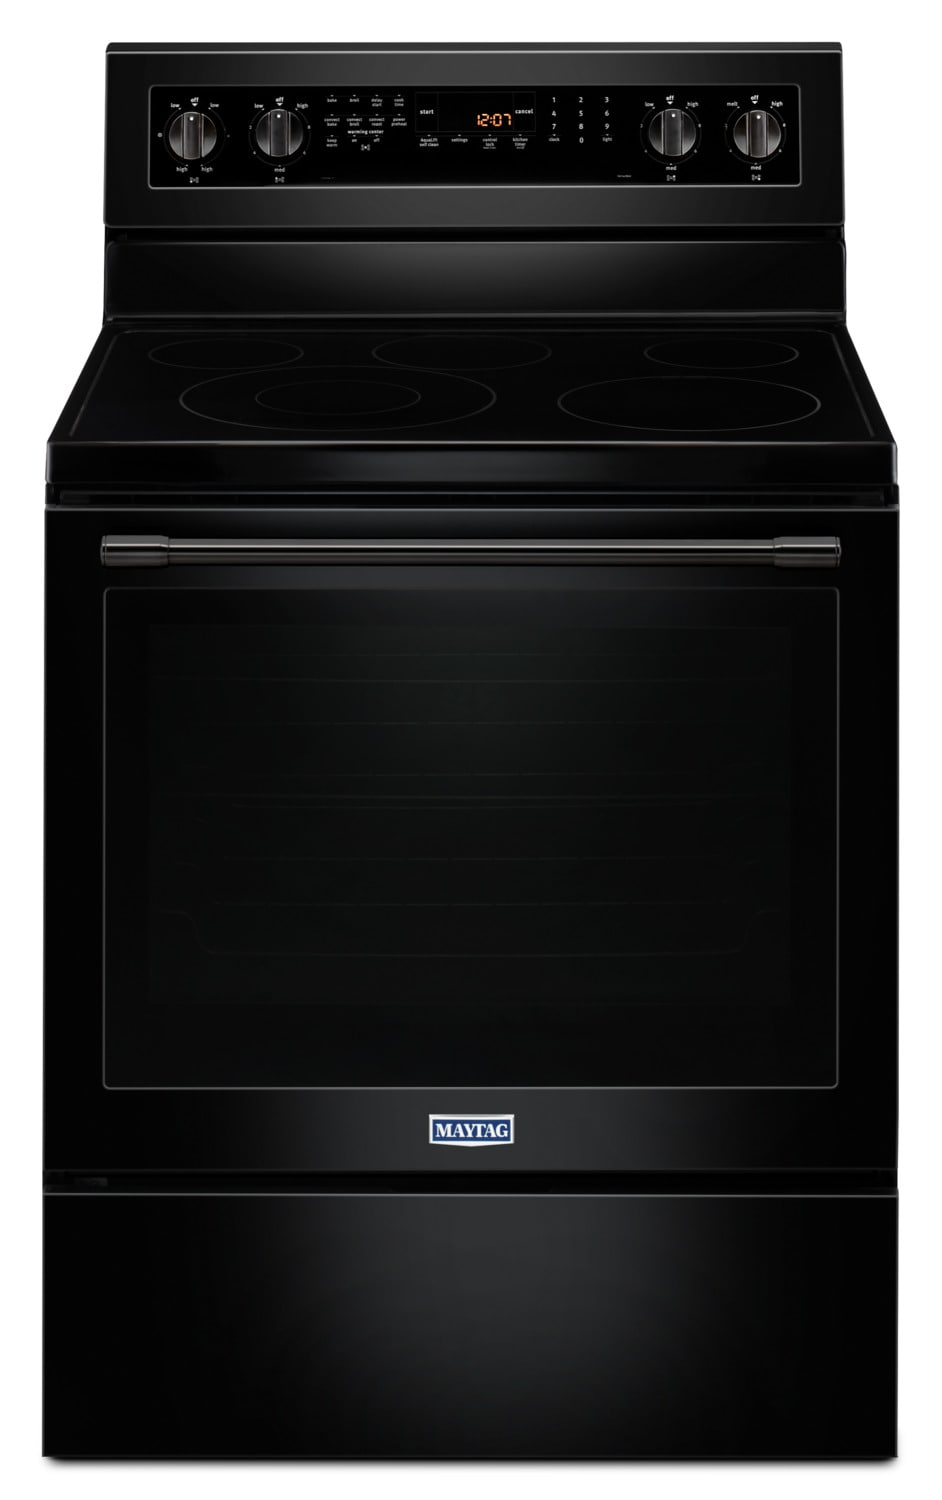 Maytag Black Freestanding Electric Convection Range (6.4 Cu. Ft.) - YMER8800FB